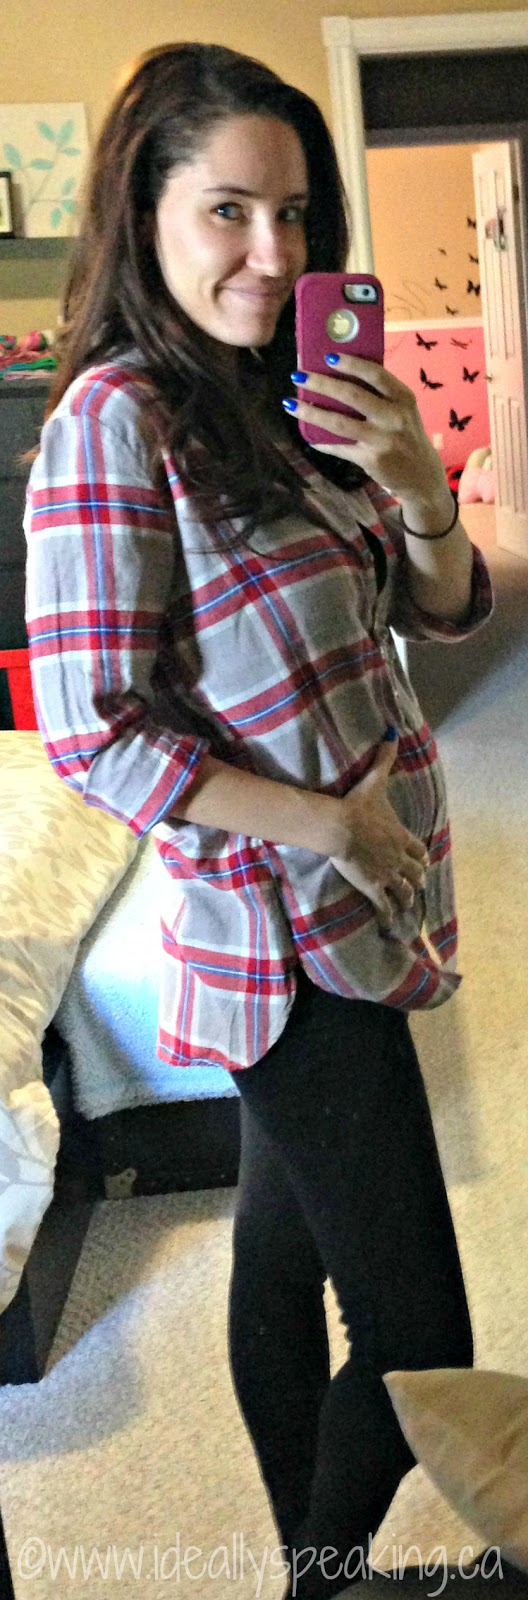 Oversized plaid shirt as a cute maternity top!